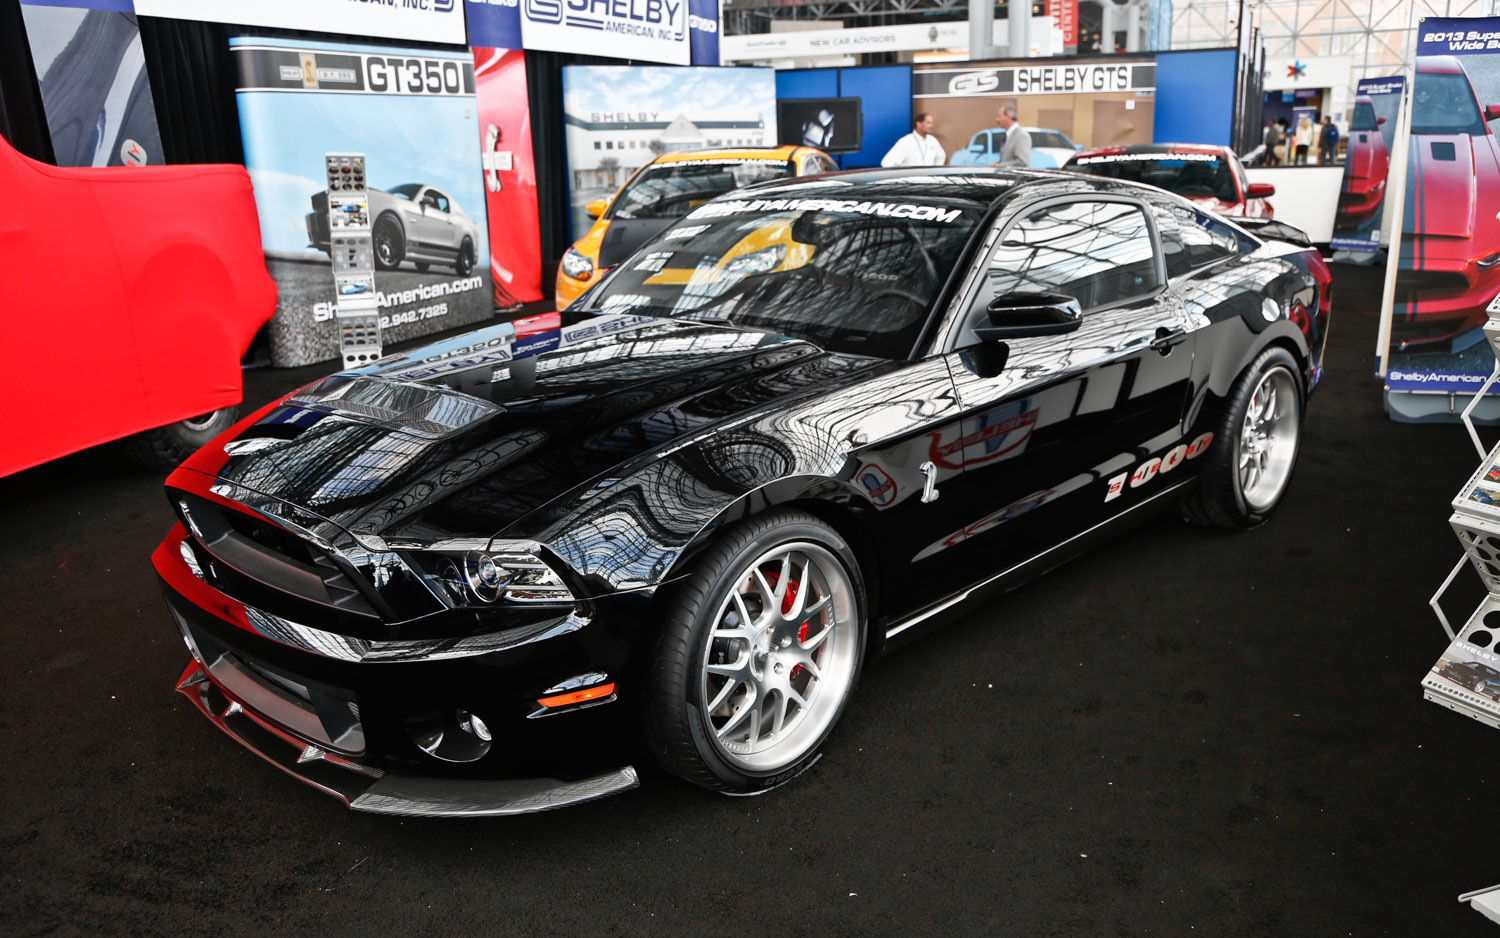 Shelby GT500-Based Shelby 1000 S/C Has 1200 HP - Motor Trend